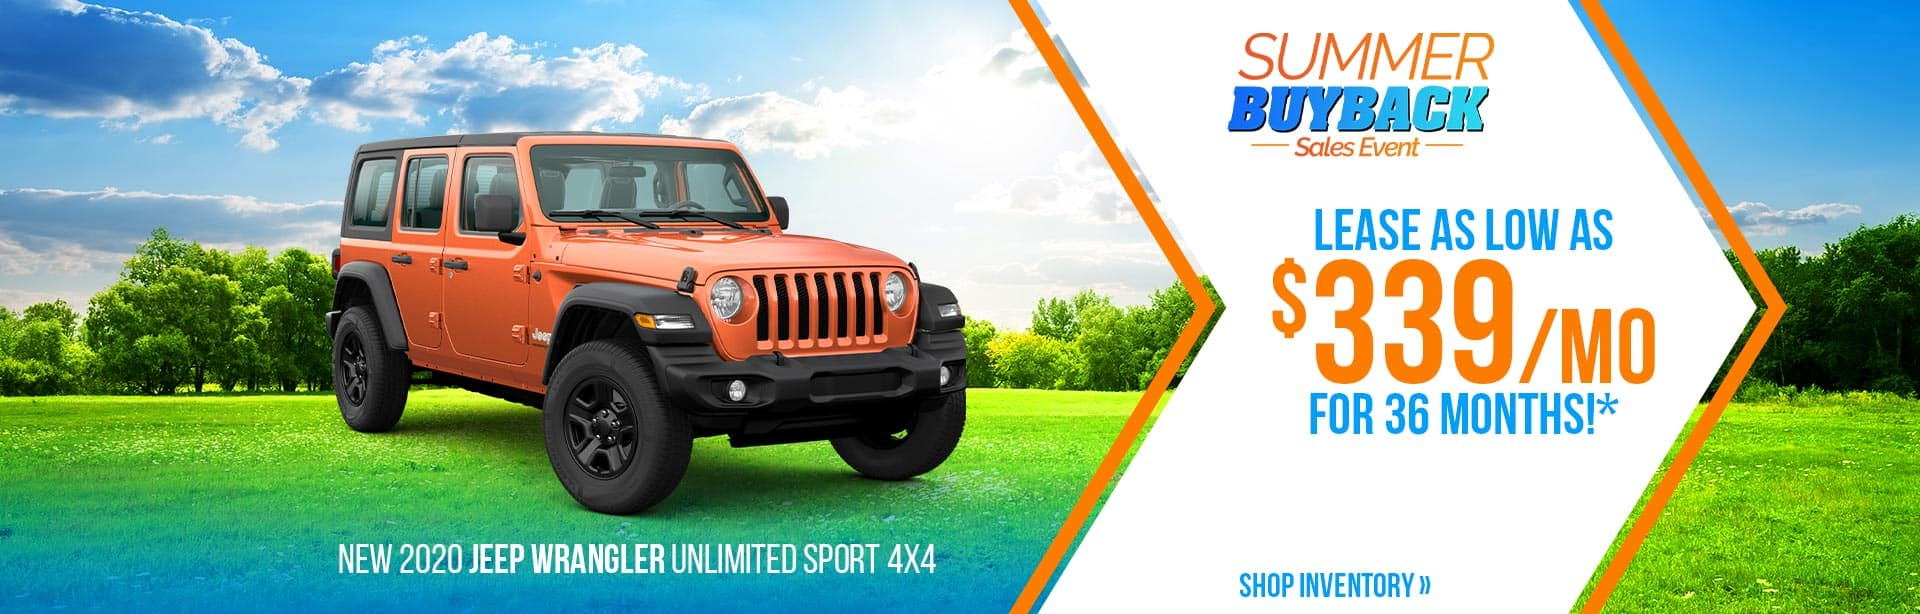 Lease a Wrangler for $339 a month near Lafayette, Indiana